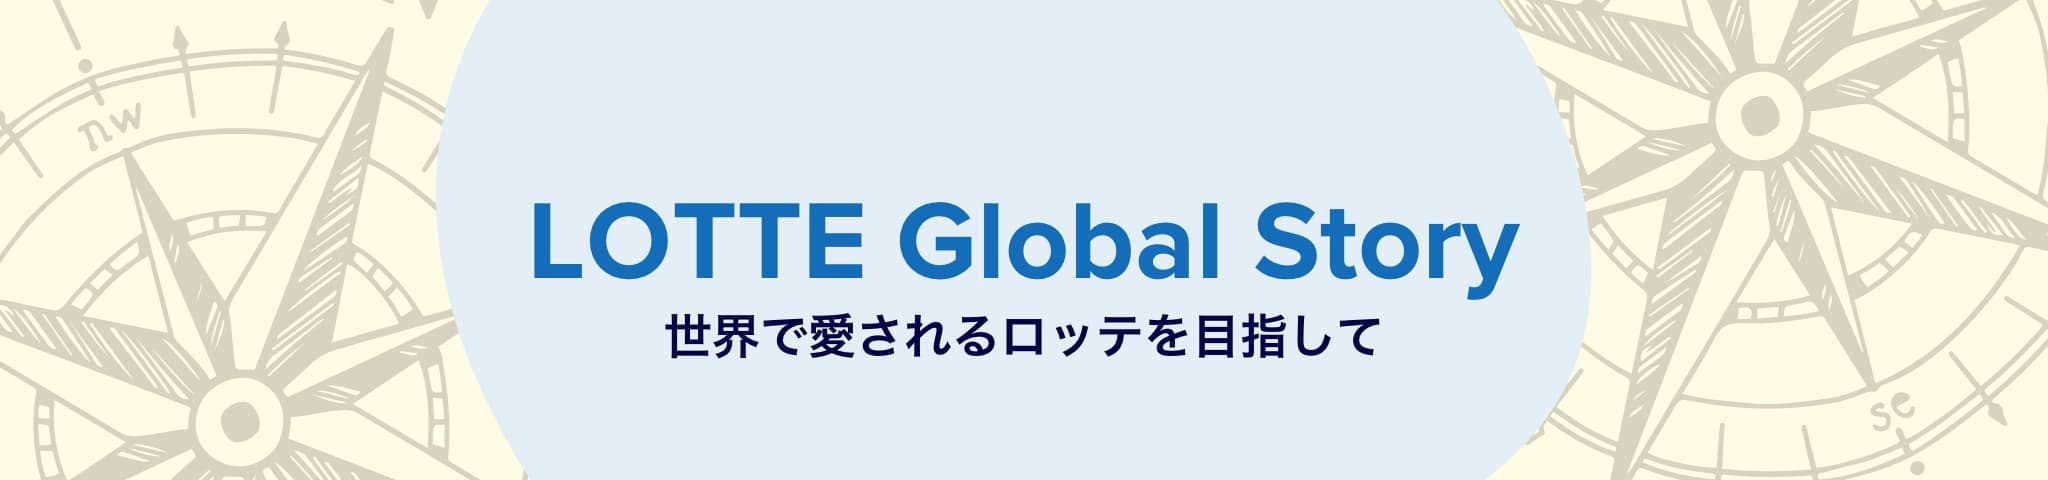 LOTTE Global Story